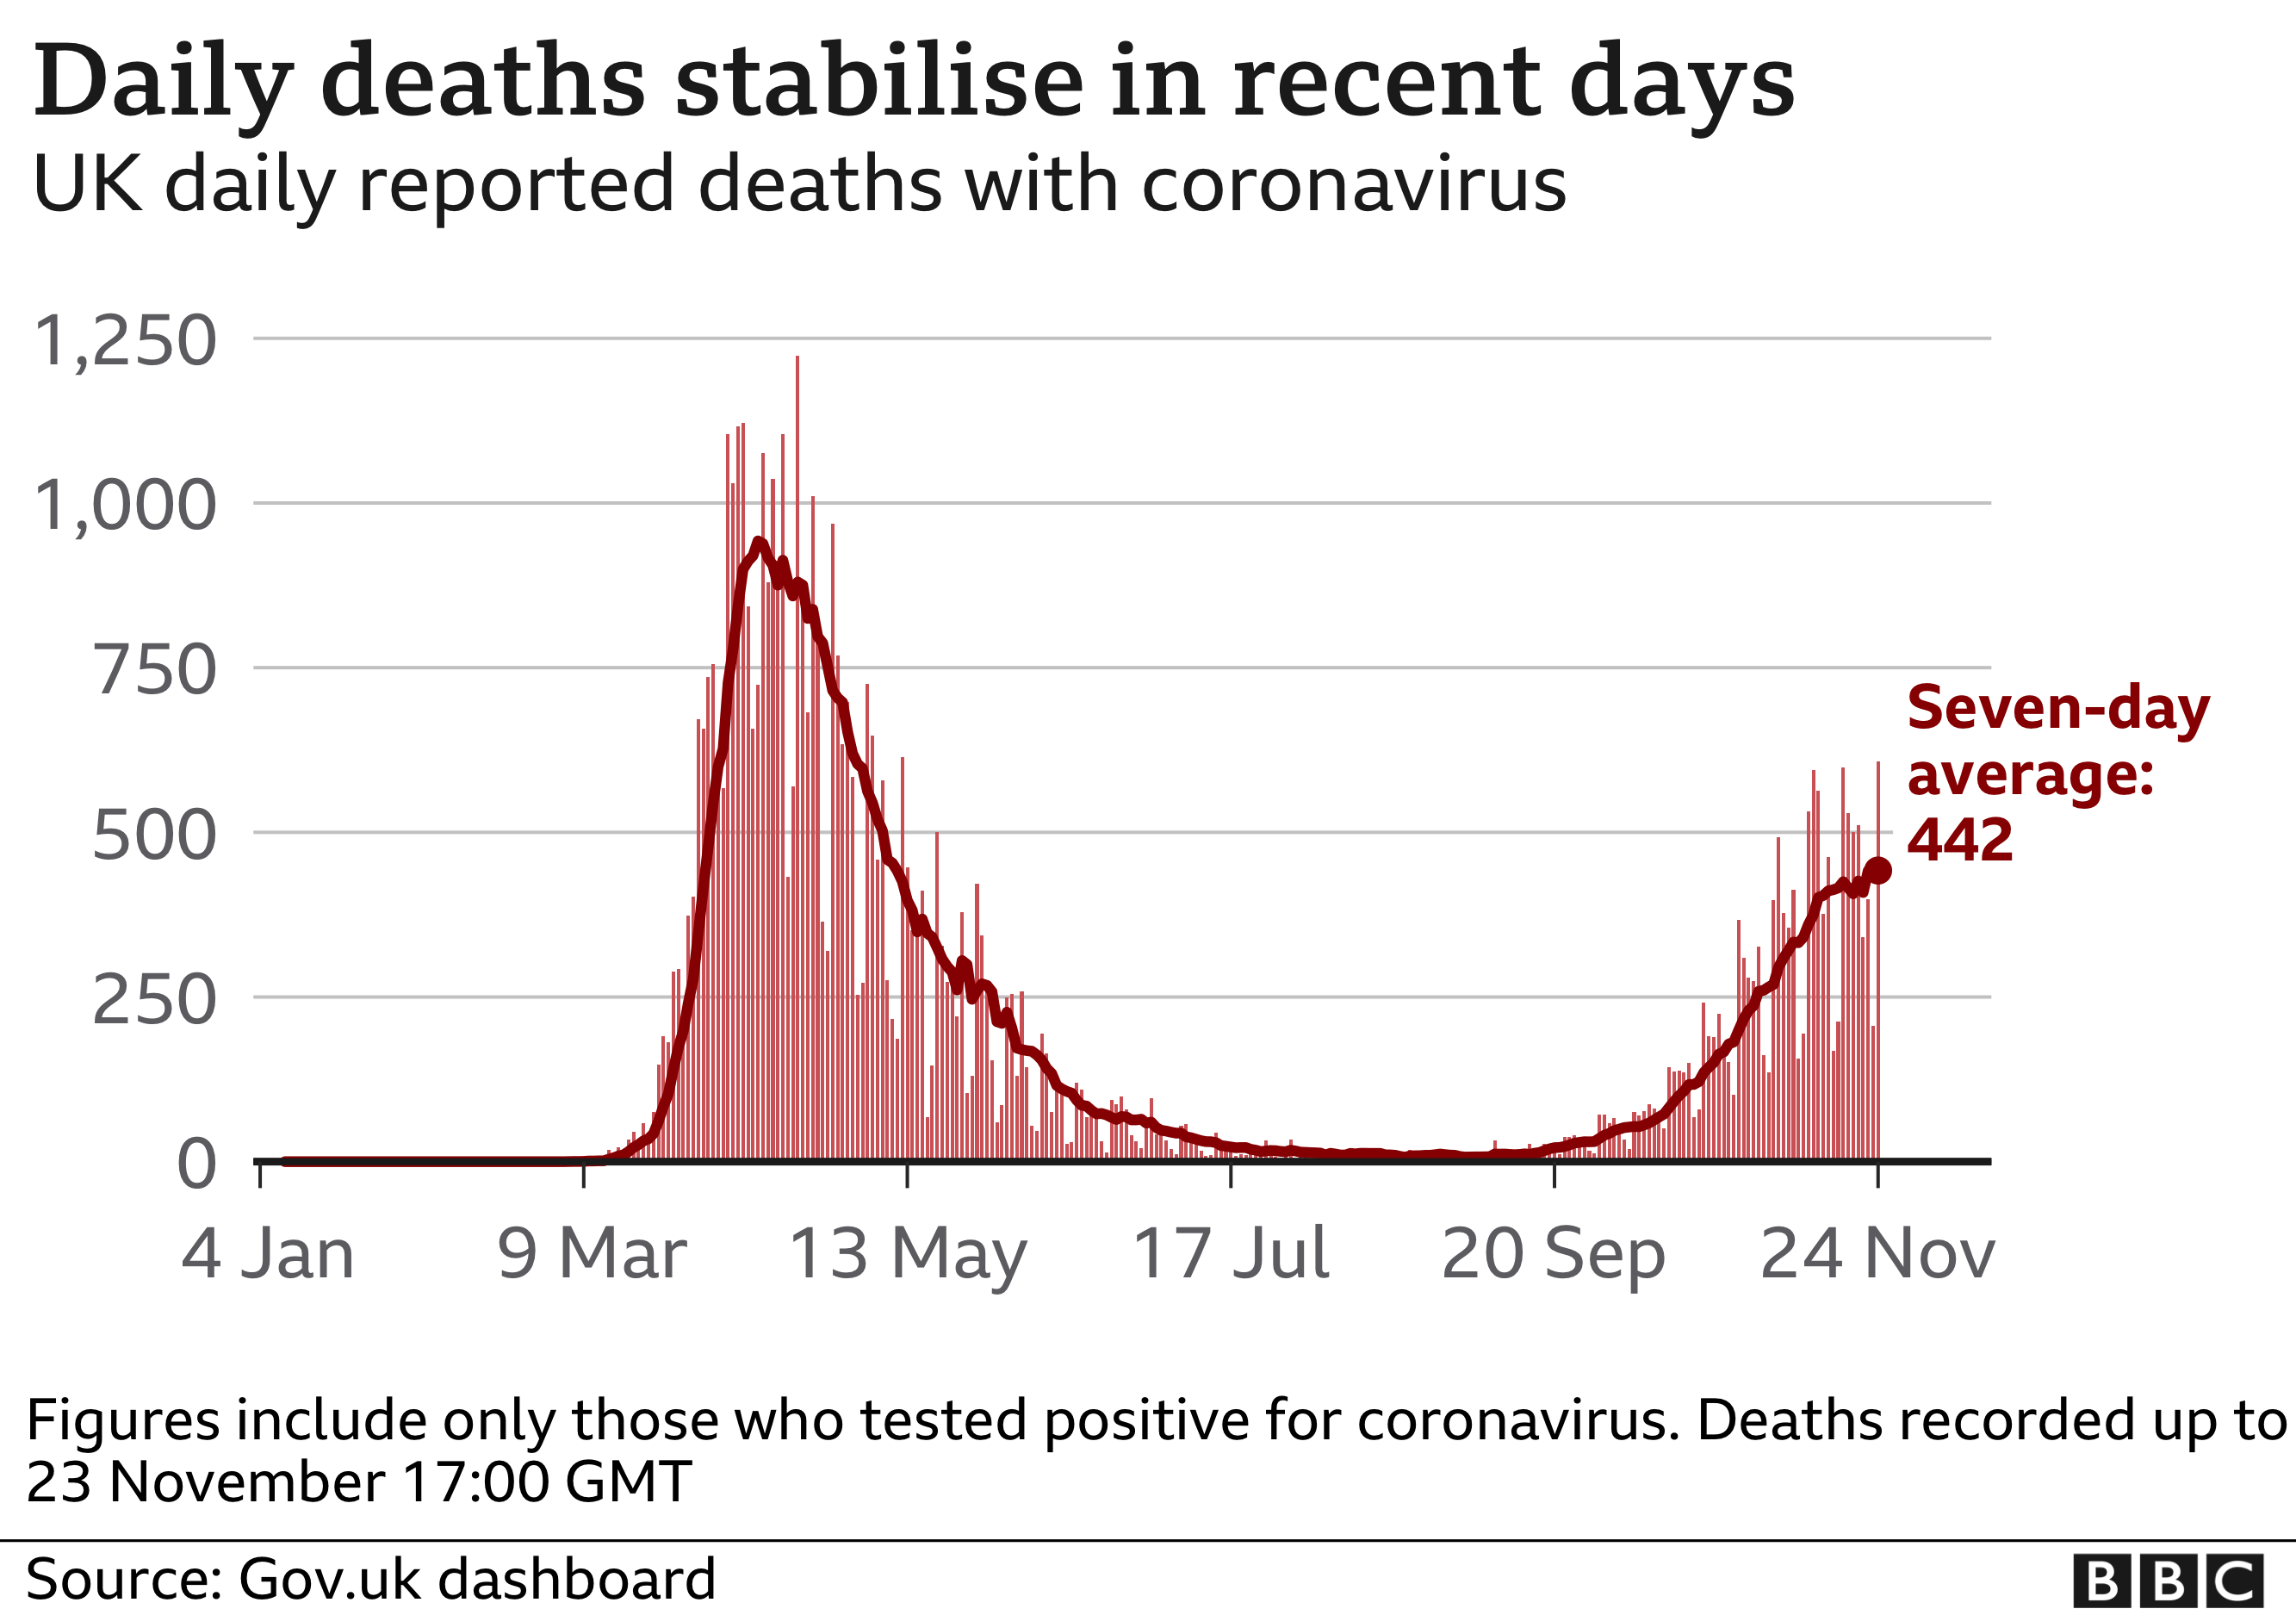 Chart shows daily deaths stabilising, updated 24 Nov.